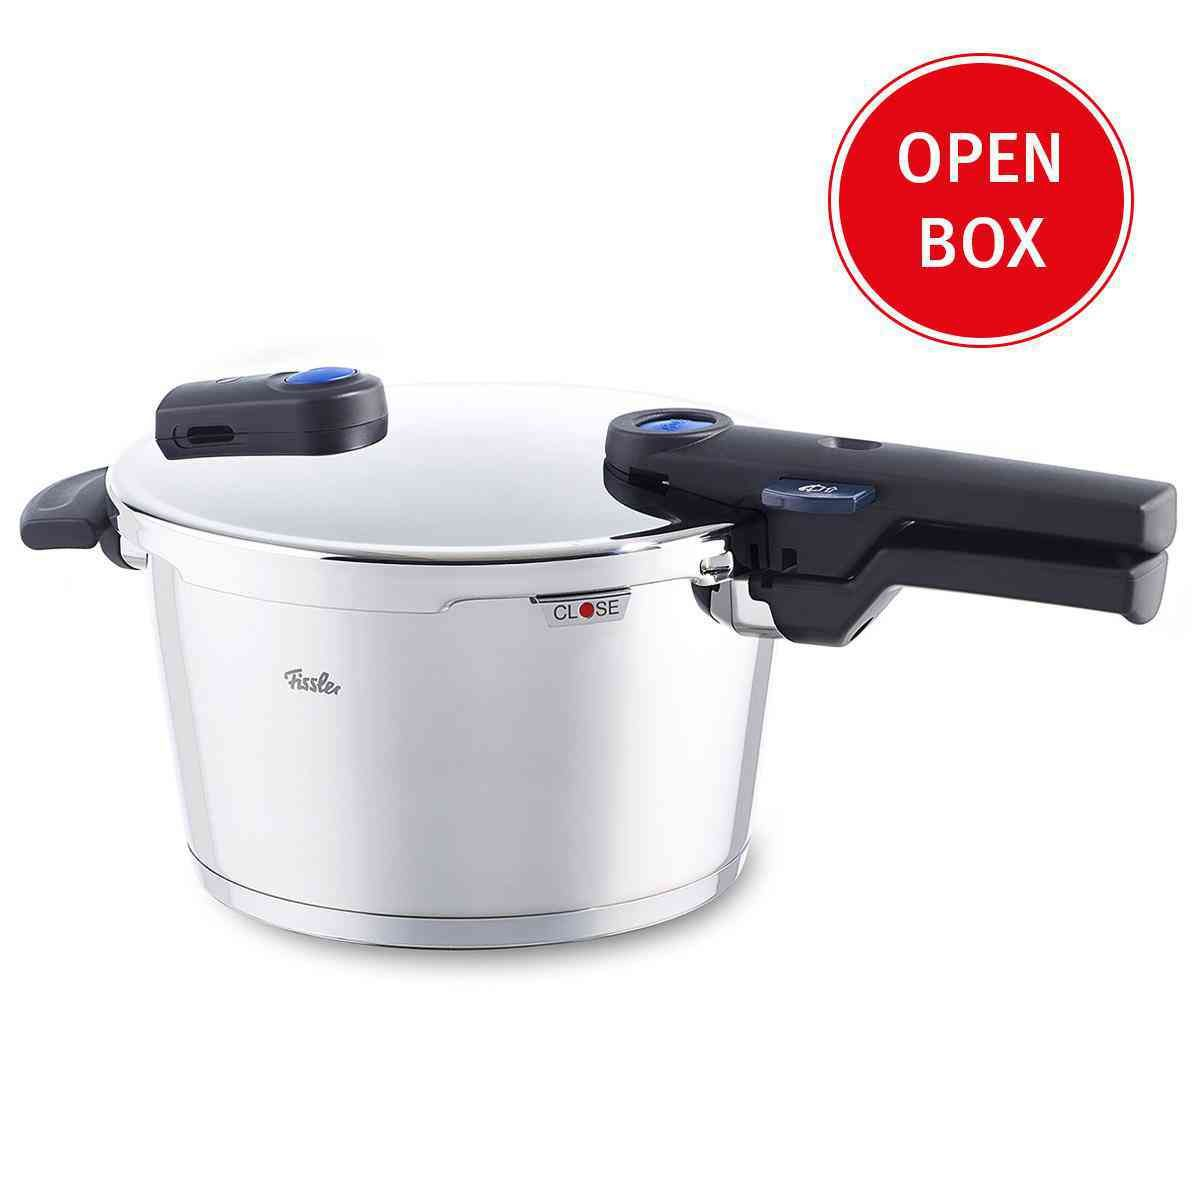 Open Box - vitaquick® Pressure Cooker, 8.5 Quart